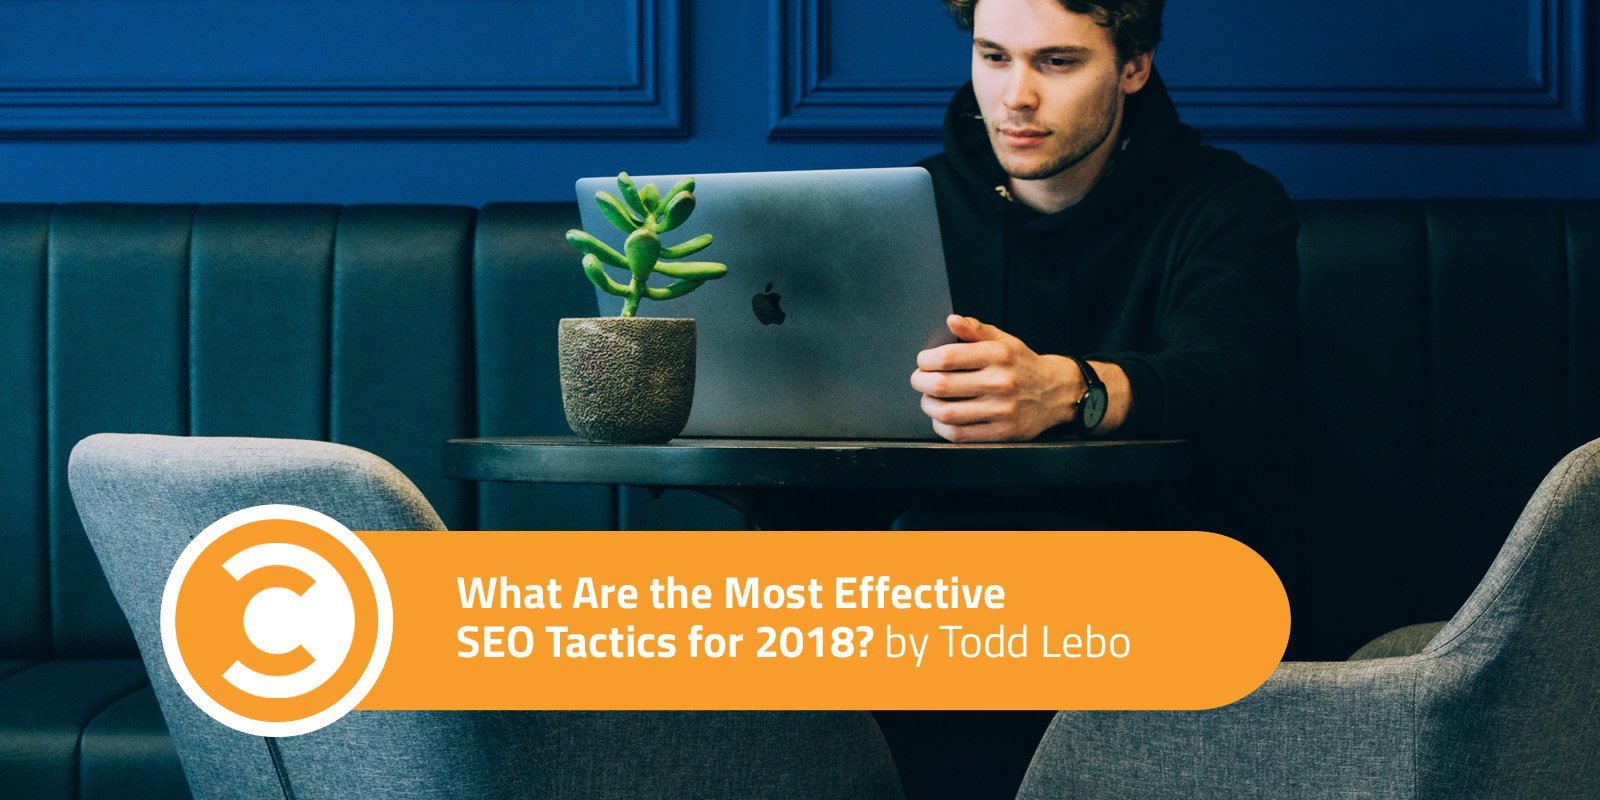 What Are the Most Effective SEO Tactics for 2018